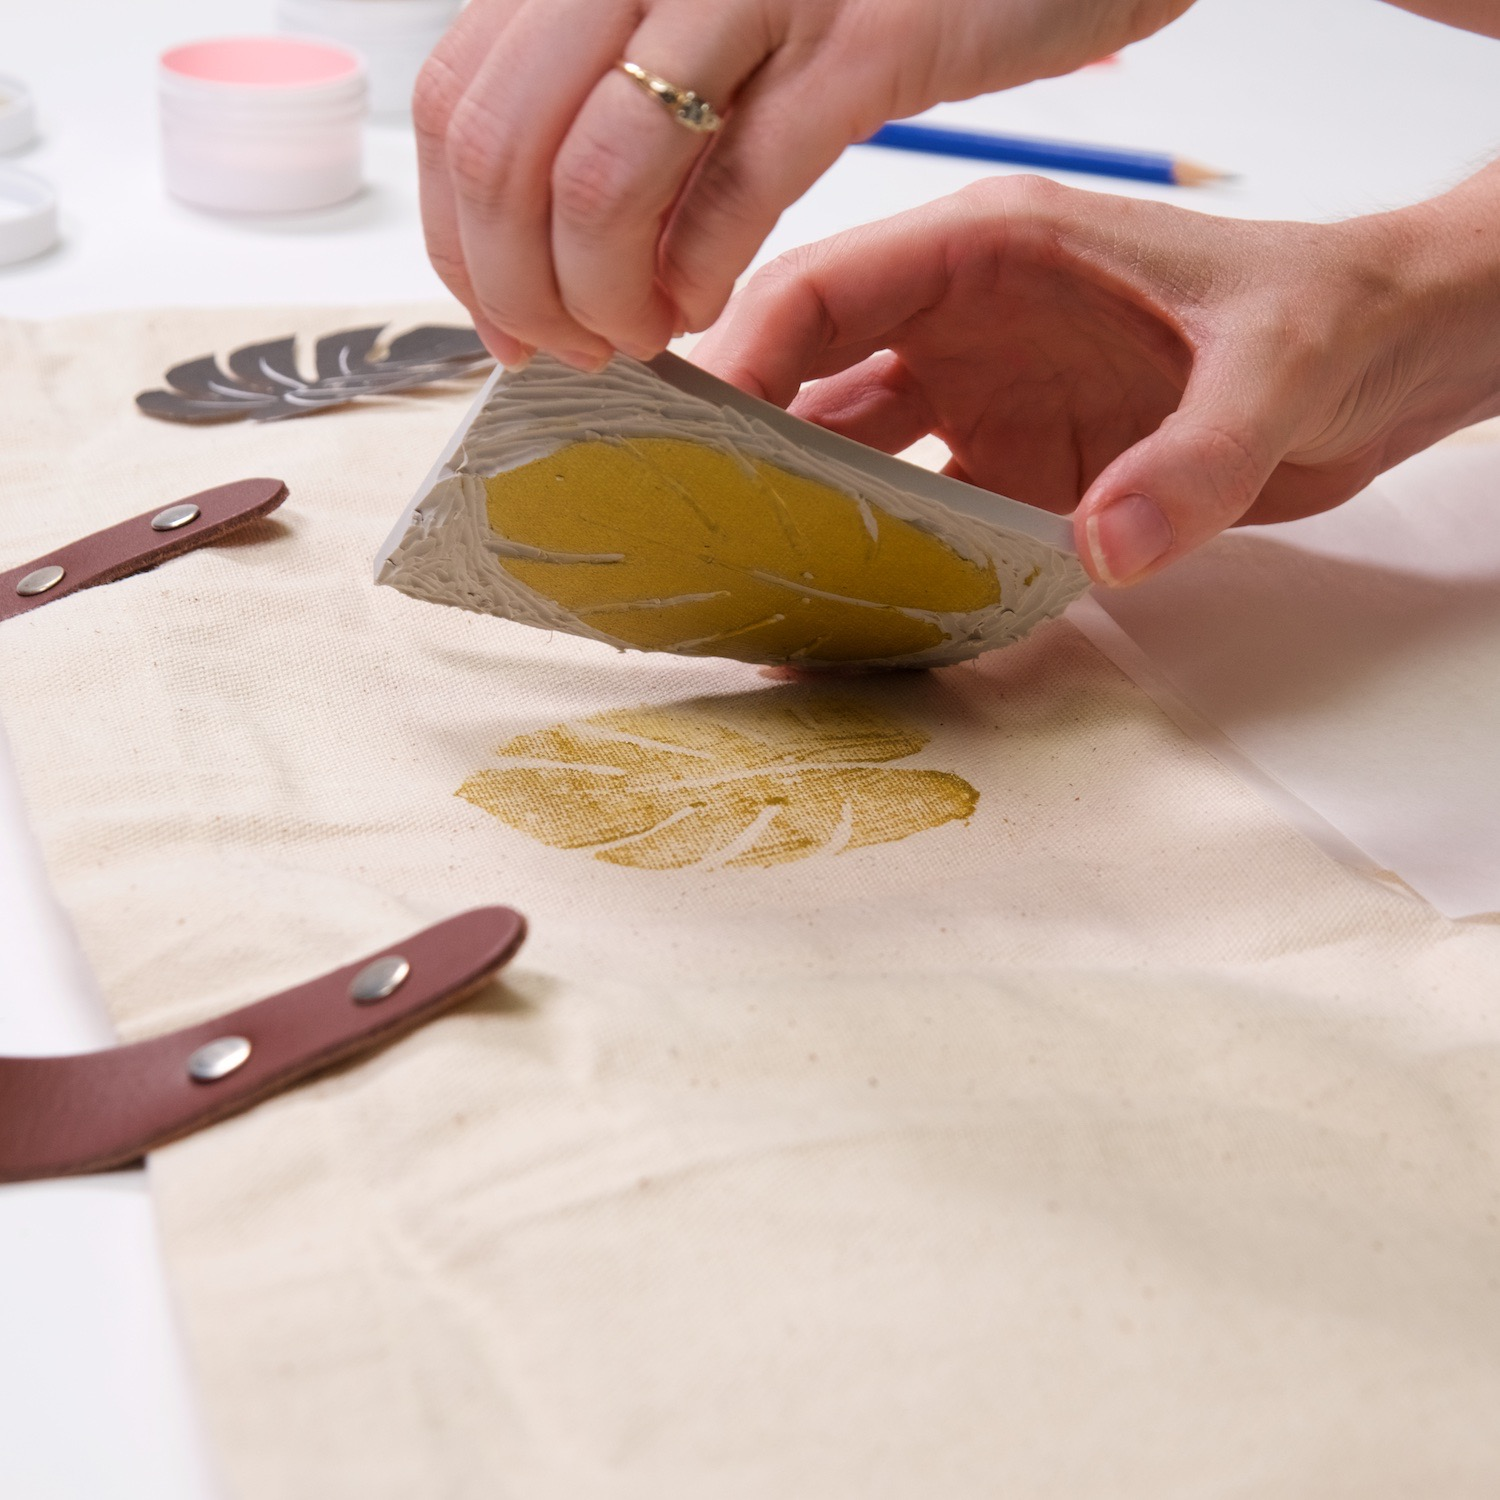 lift the linocut directly off the printed tote